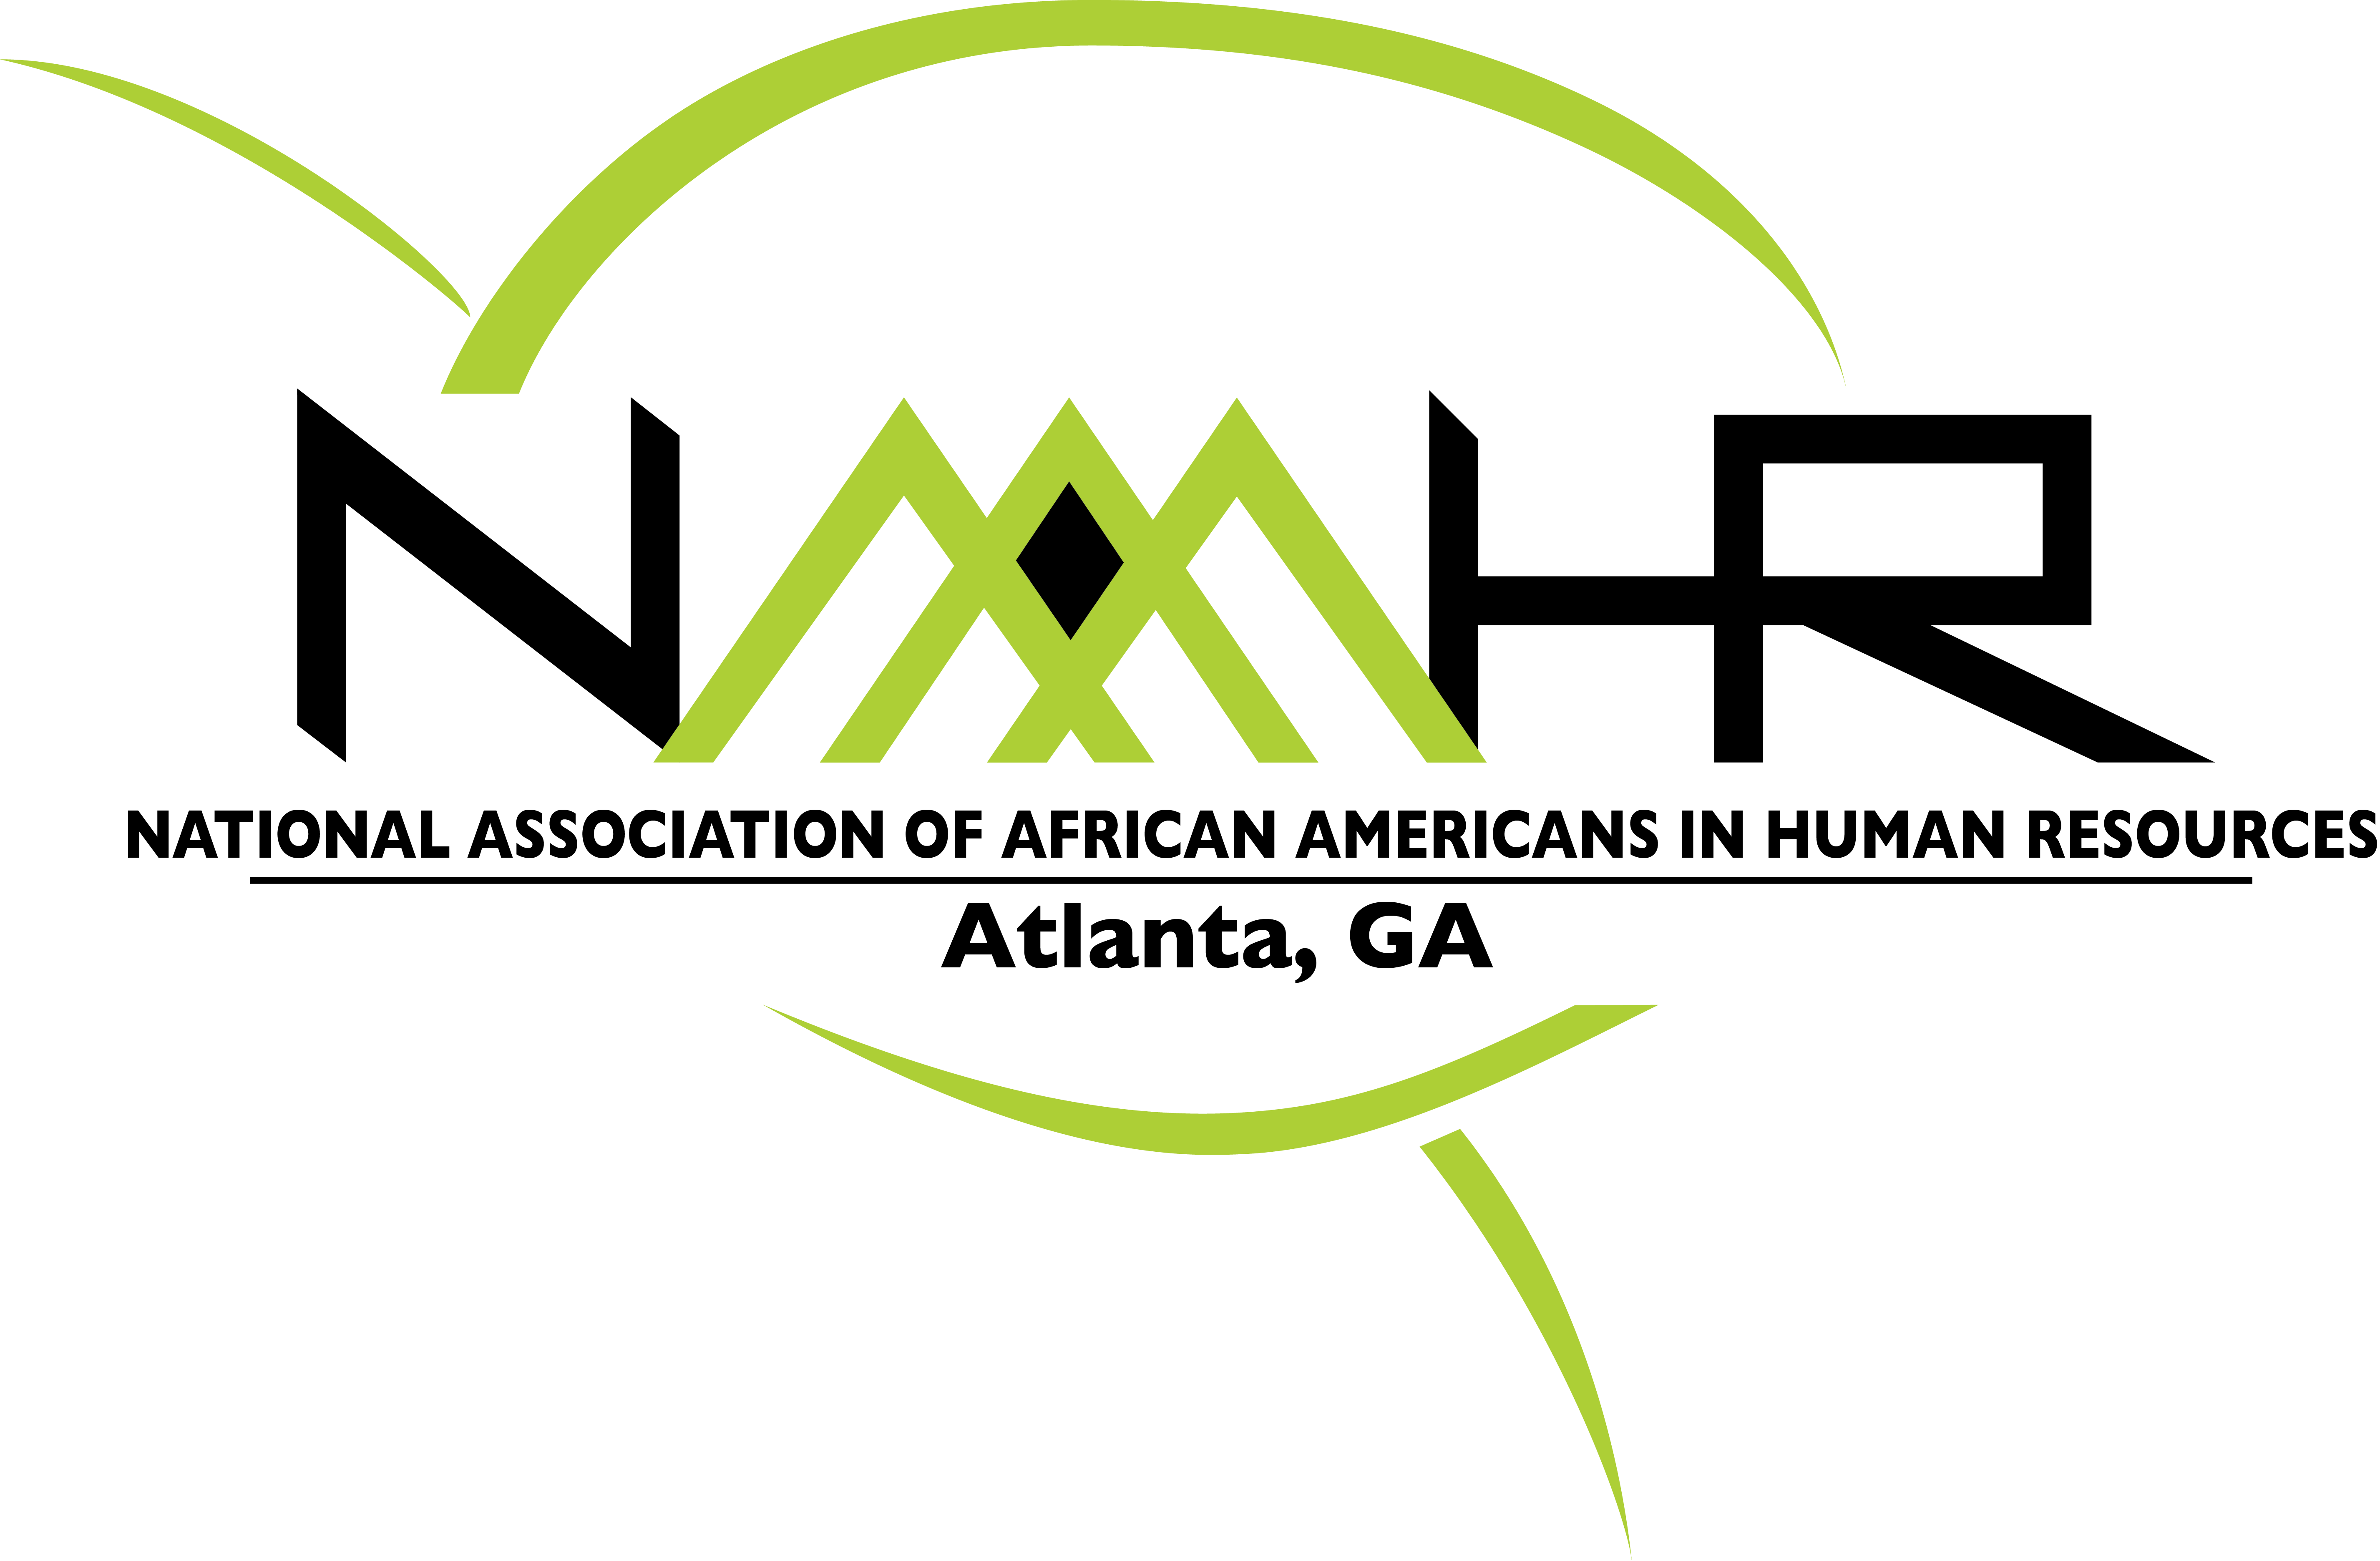 Spring 2019 PHR/SPHR Certification Preparatory Course